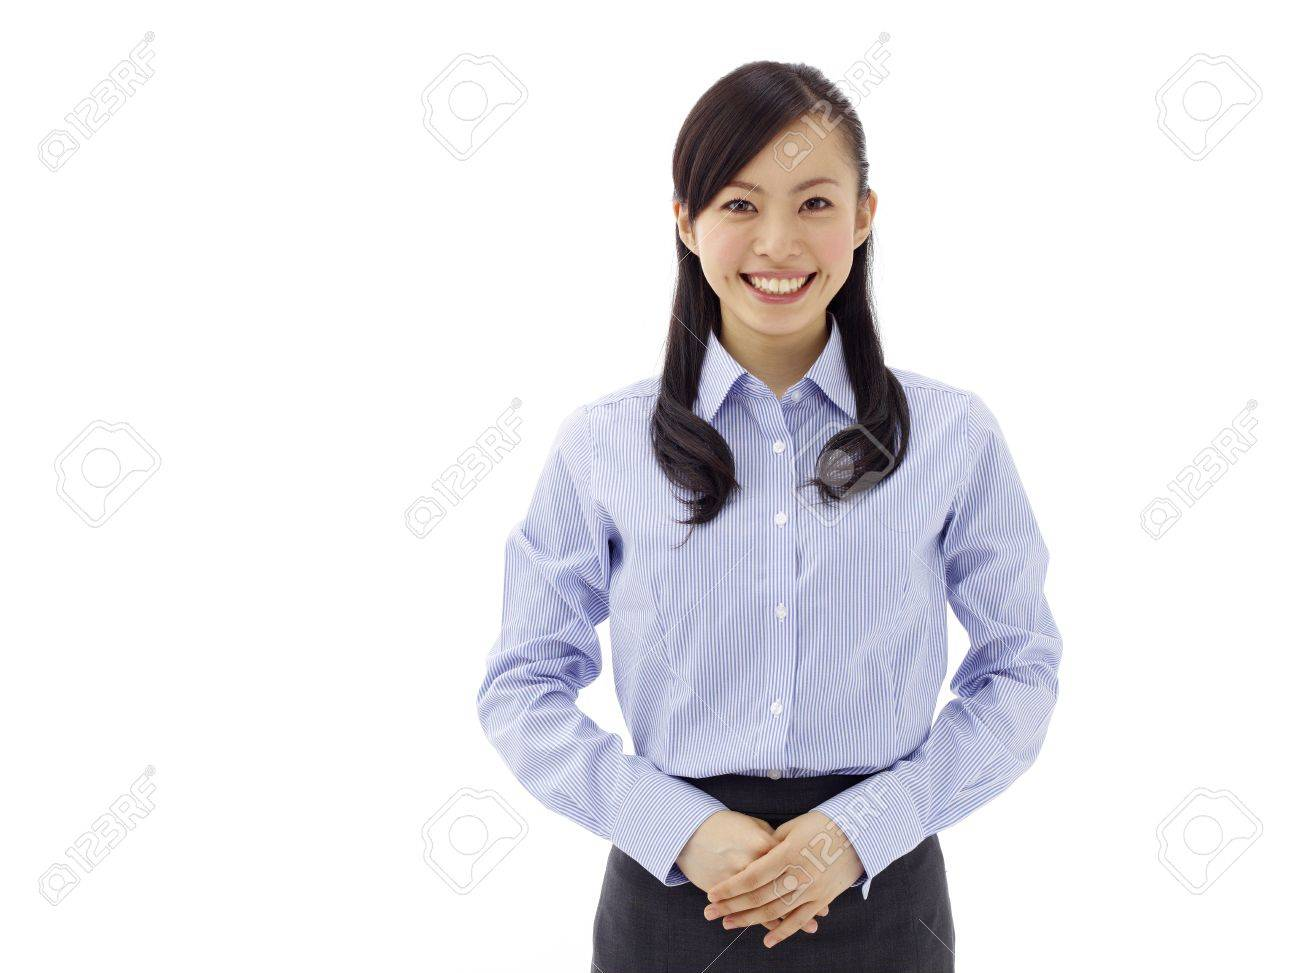 business woman smiling - isolated over a white background Stock Photo - 11677064